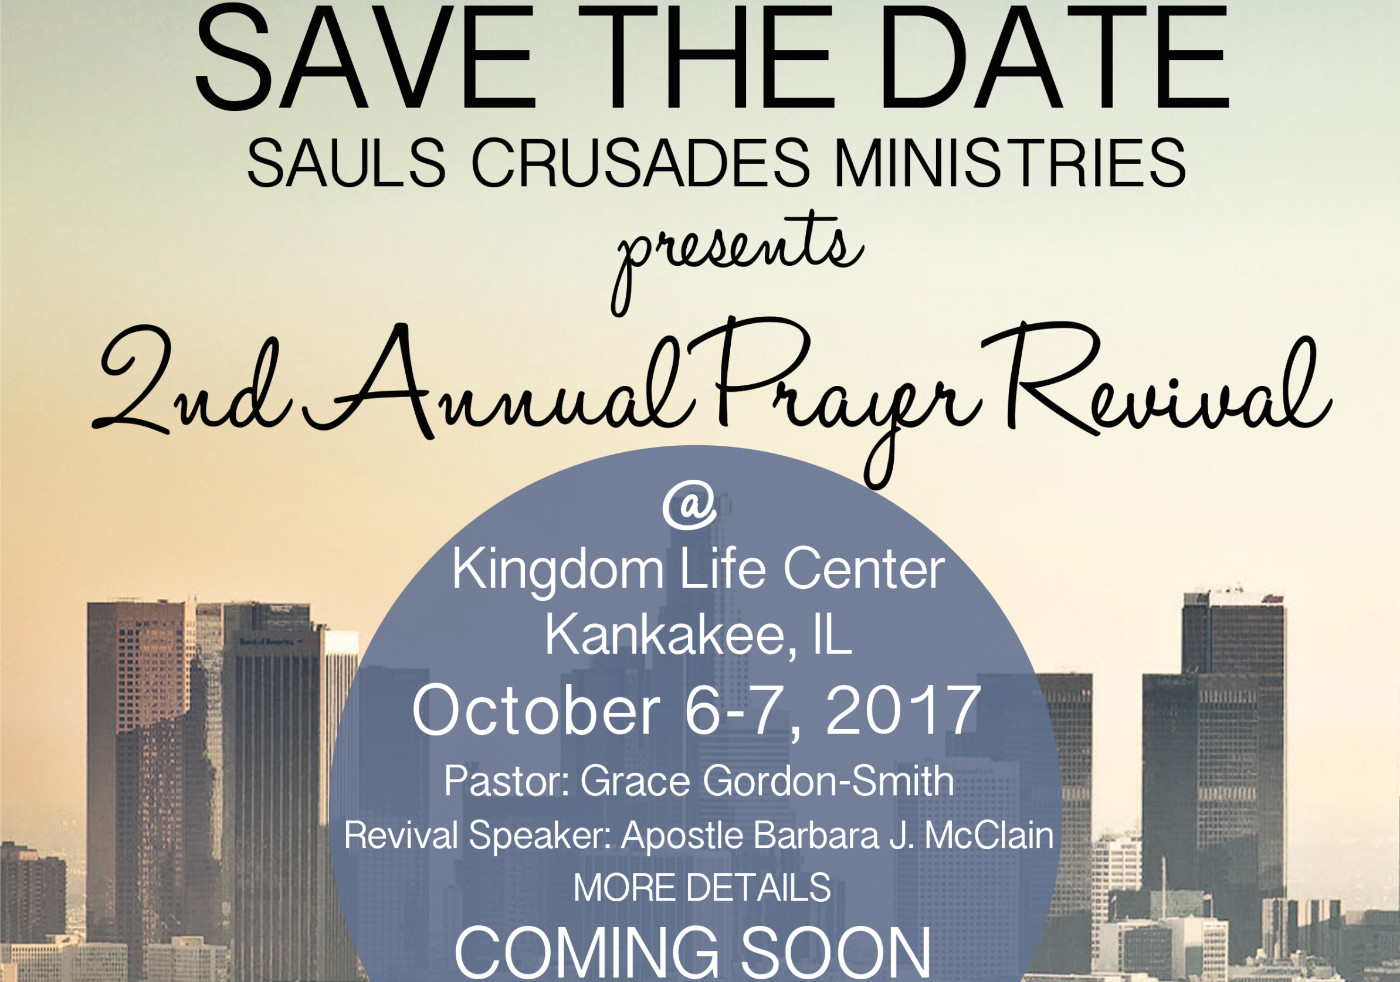 scm-2nd-Annual-Prayer-Revival-Save-The-Date-Flyer-web